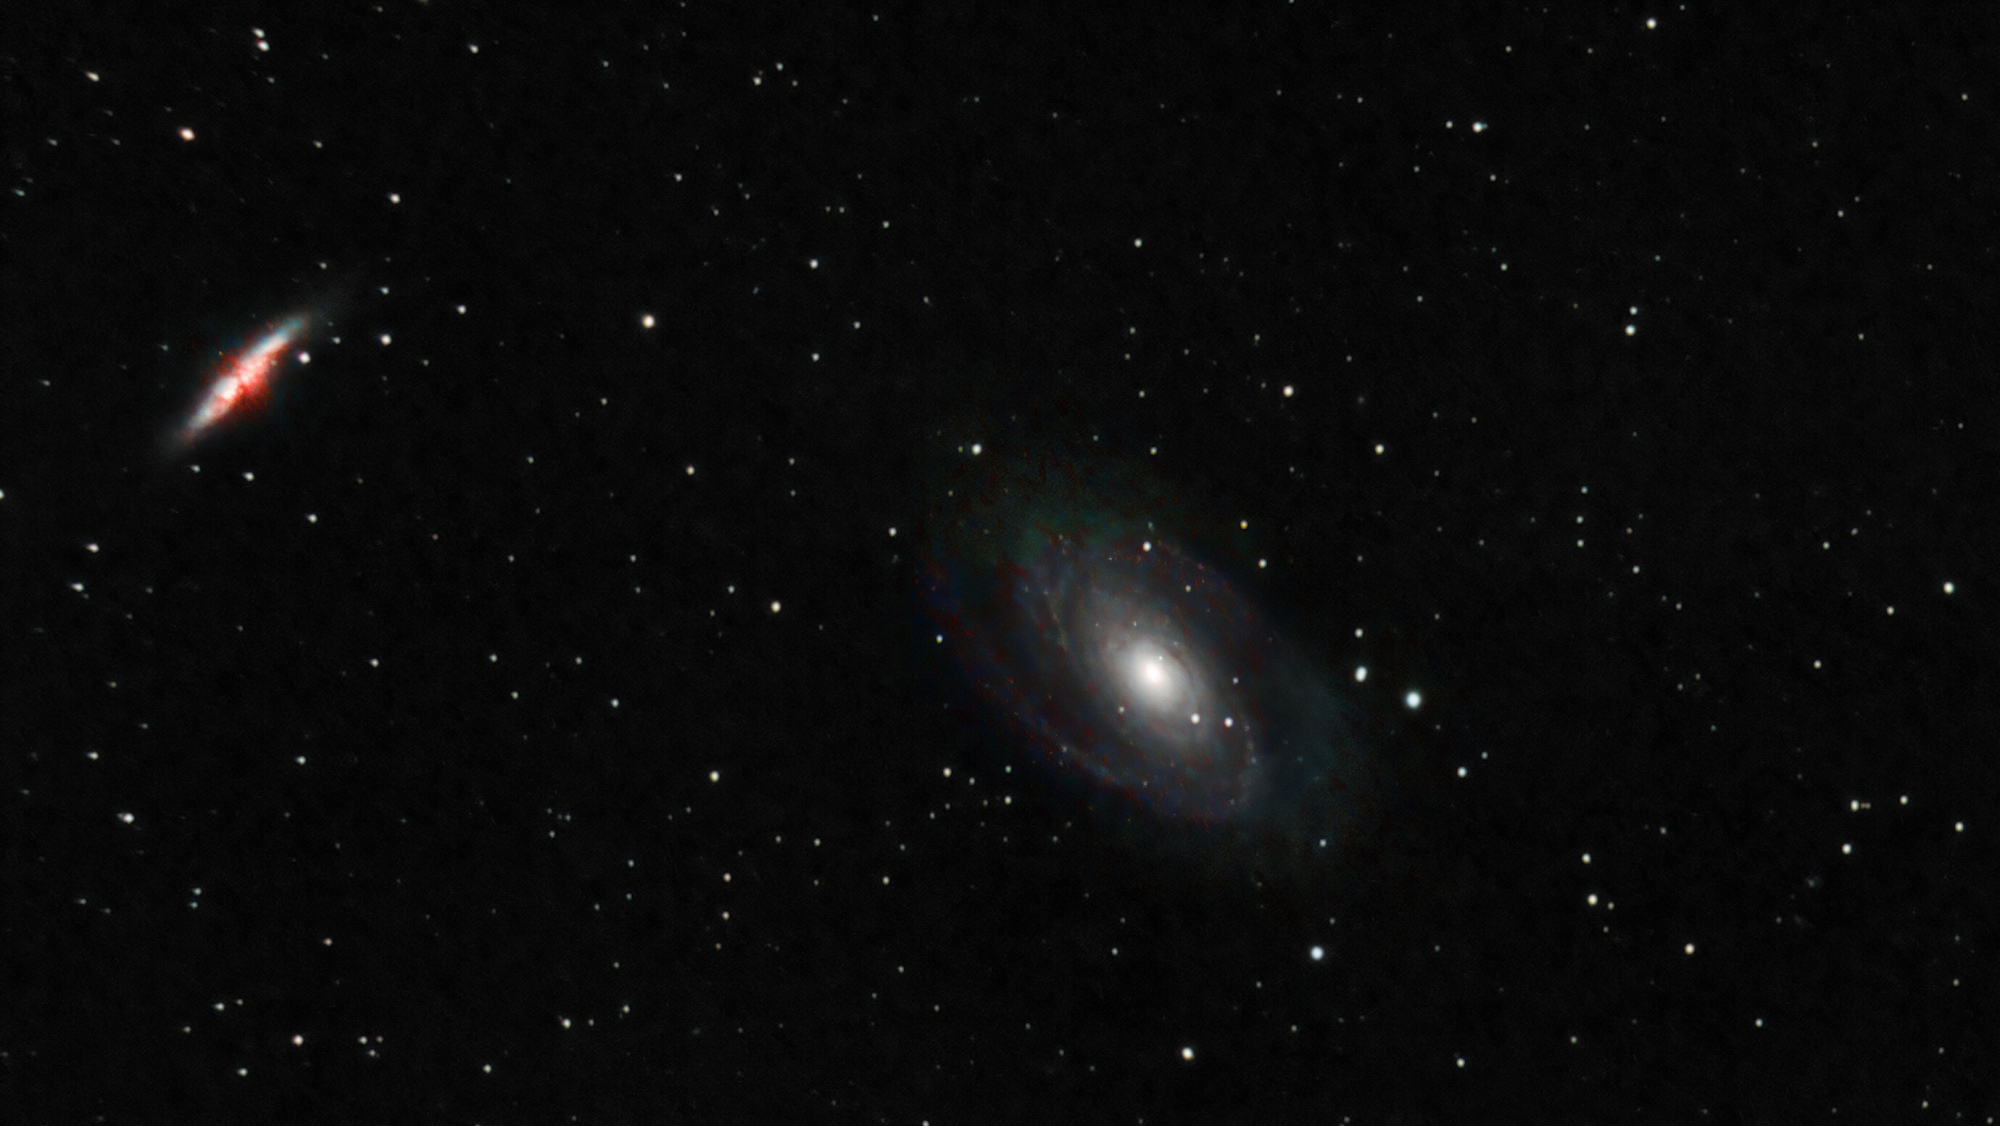 r_pp_Galaxie Bode M81 39x300s ISO800_stacked_proccessed_TIFF for PS - V4.3 - detail.jpg